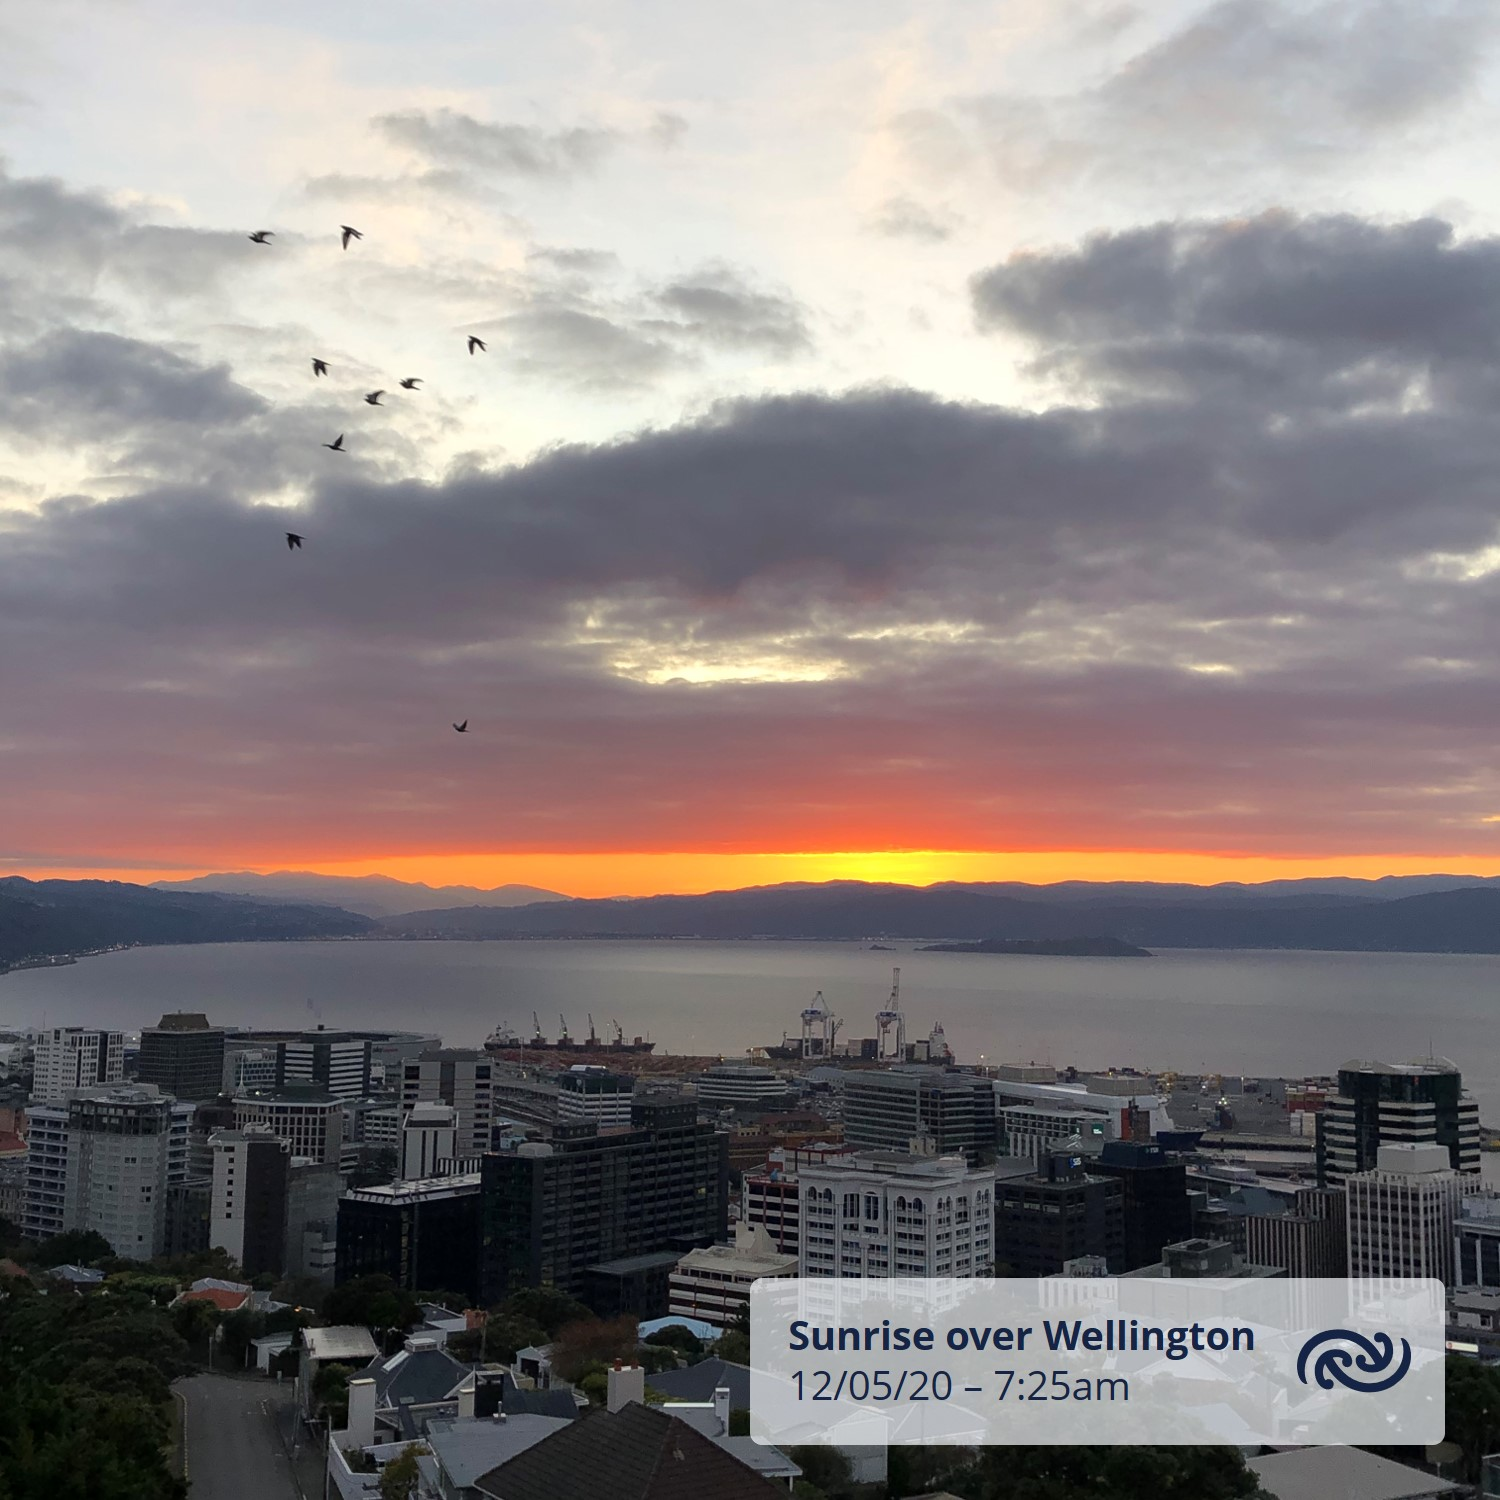 A beaut sunrise over Wellington this morning. Despite the saying 'Red in the morning sailors warning' the capital is forecast a fine day with a top temp of 16C. There is some truth to the old weather saying but it's certainly not as reliable as checking metservice.com^AC